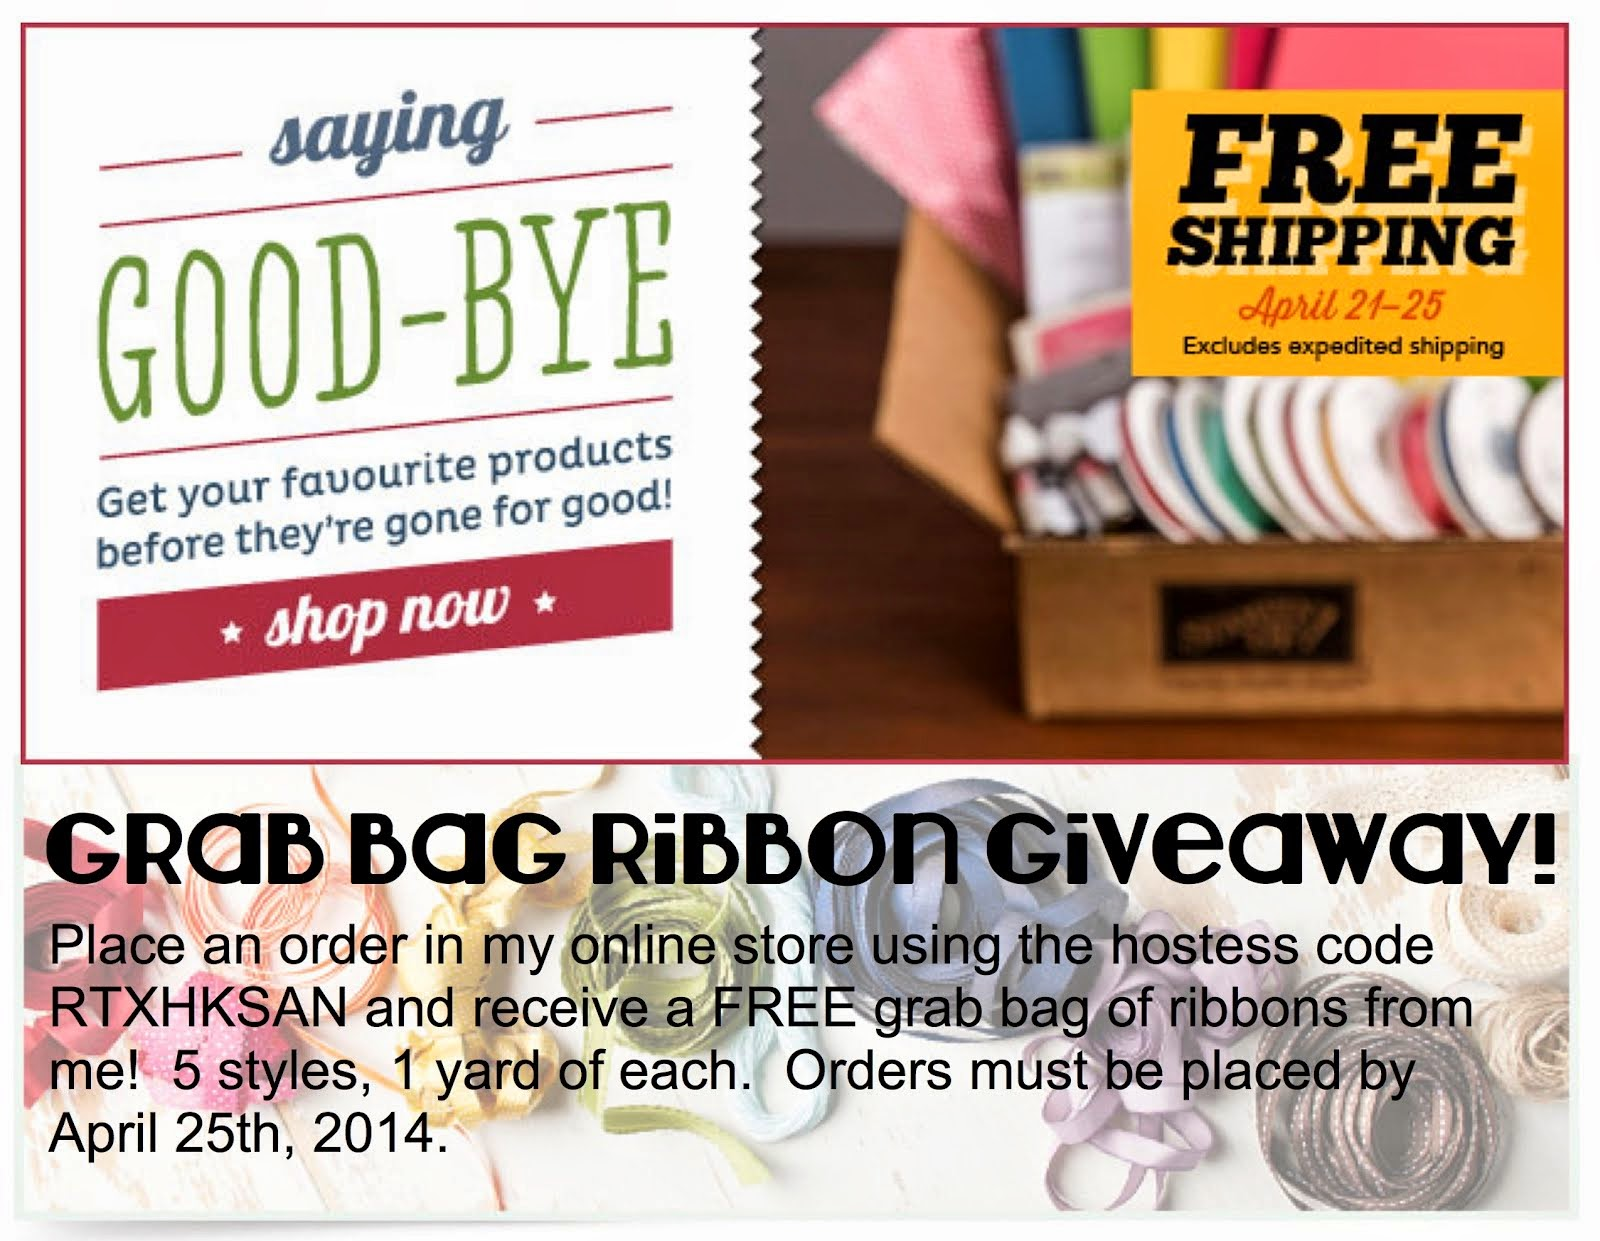 Retiring Products + FREE Shipping + FREE Ribbons = MEGA AWESOME!